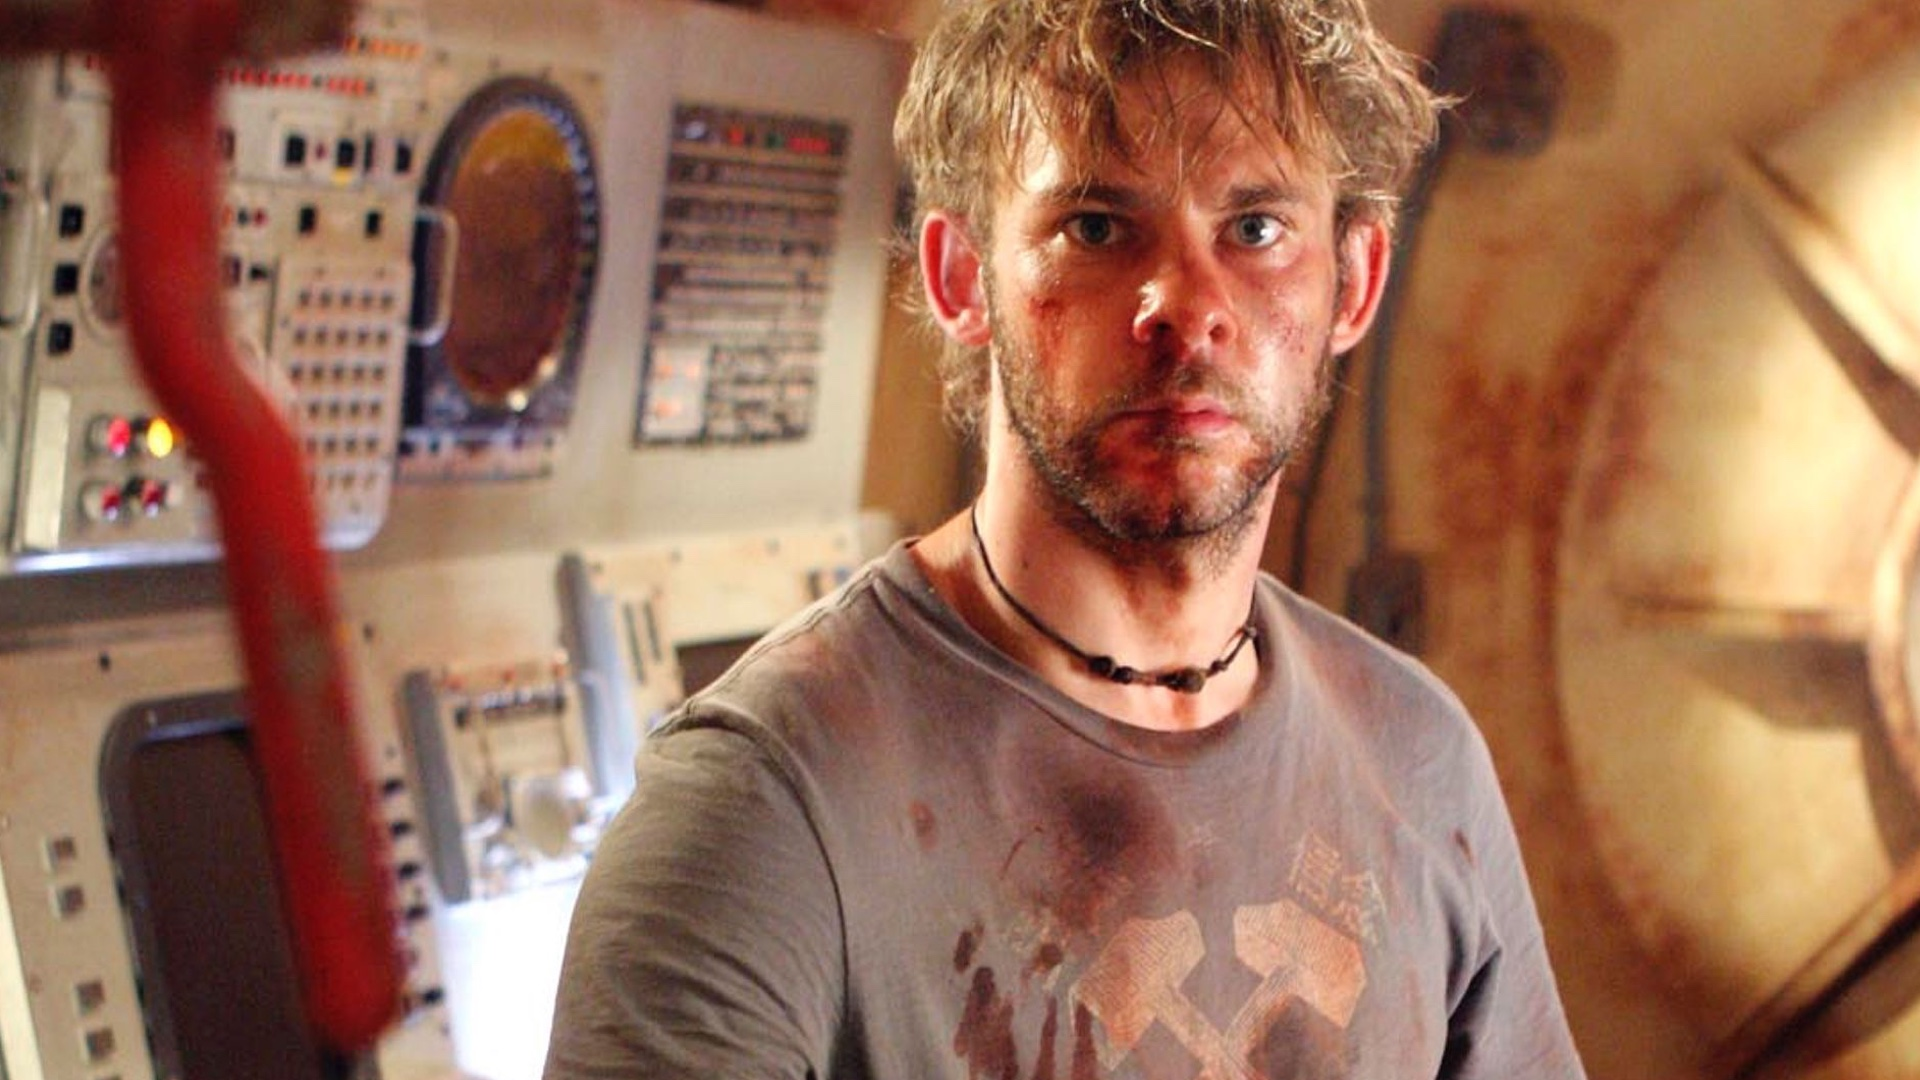 dominic-monaghan-joins-mel-gibson-and-chalie-hunnam-in-the-action-thriller-waldo-social.jpg